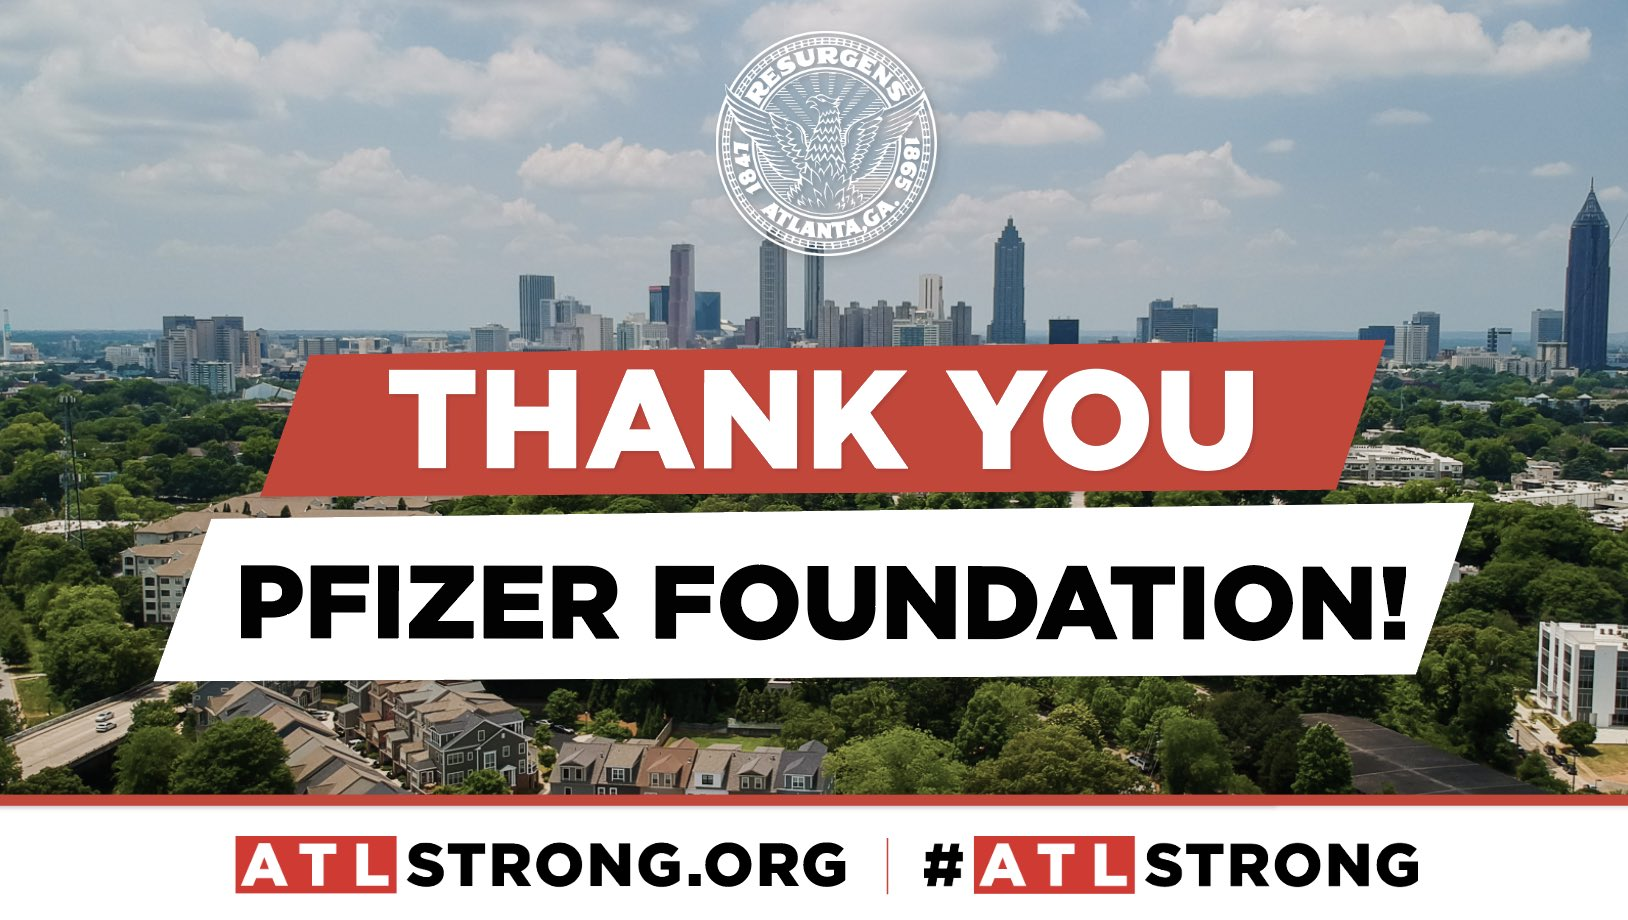 City Of Atlanta Ga On Twitter Thank You Pfizer Foundation For Donating 125 000 To The Atlstrong Fund Oneatlanta Atlstrong